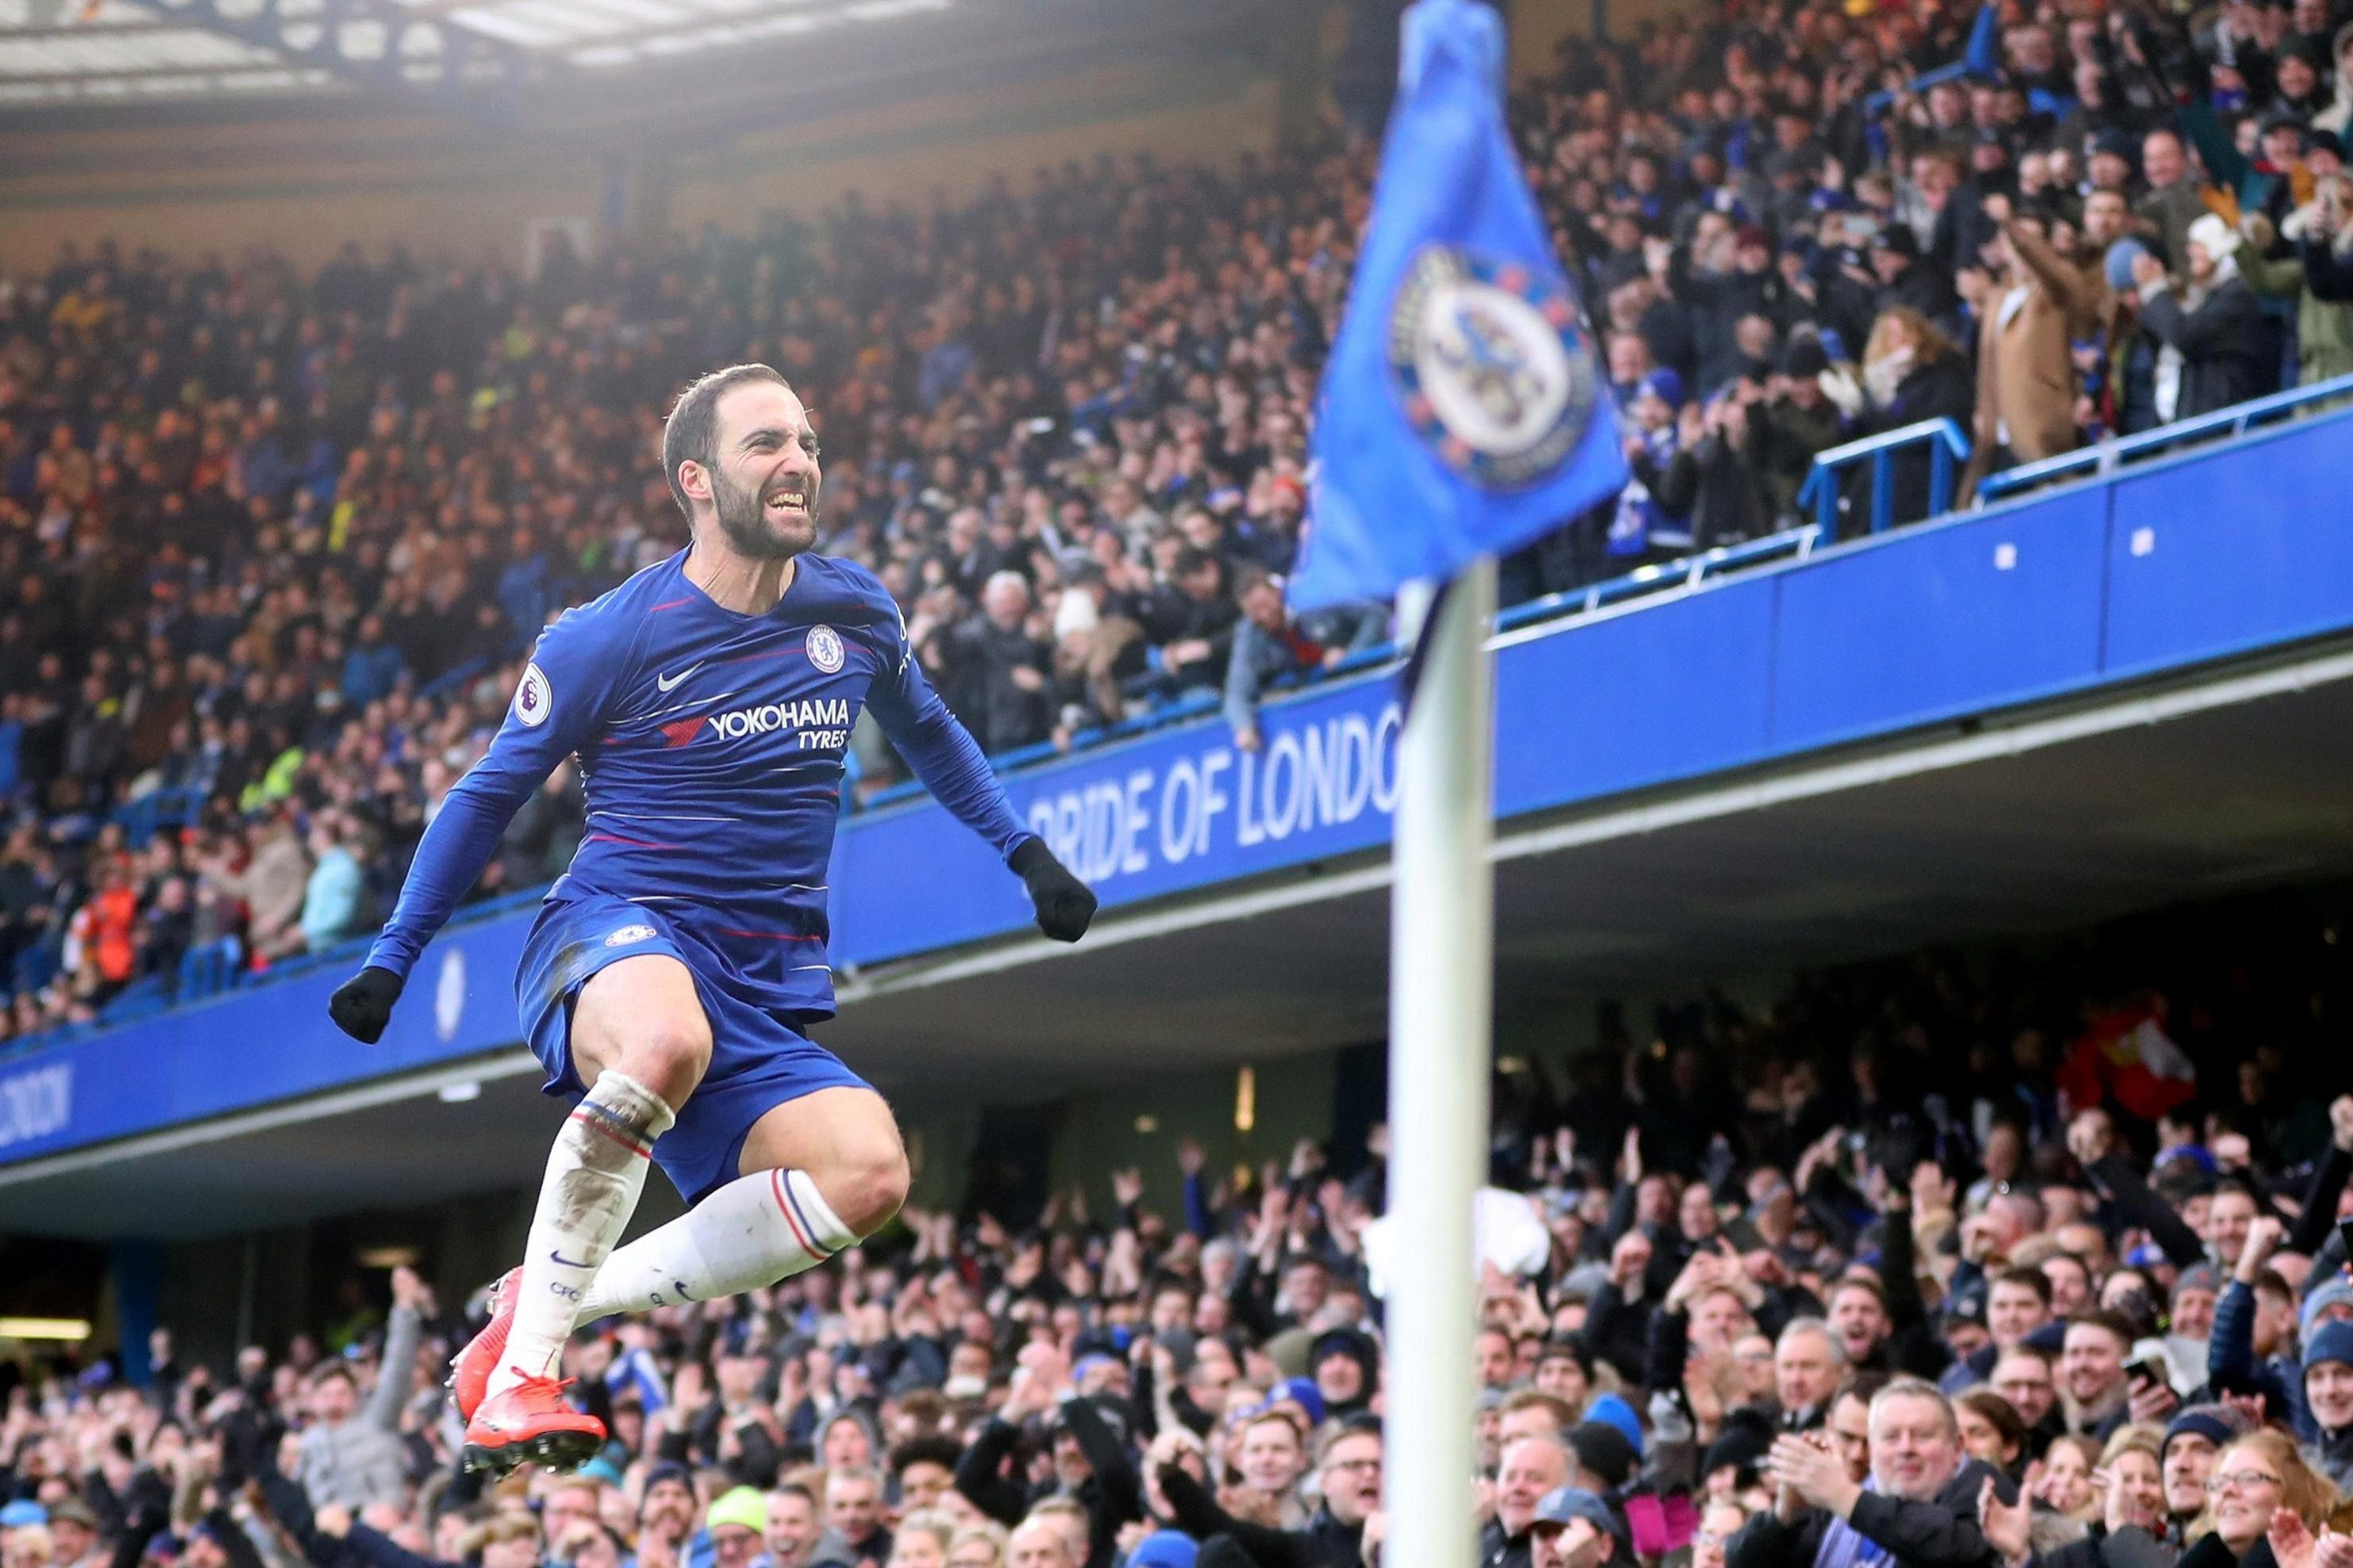 Chelsea fans delighted after Higuain adds to remarkable record under Sarri